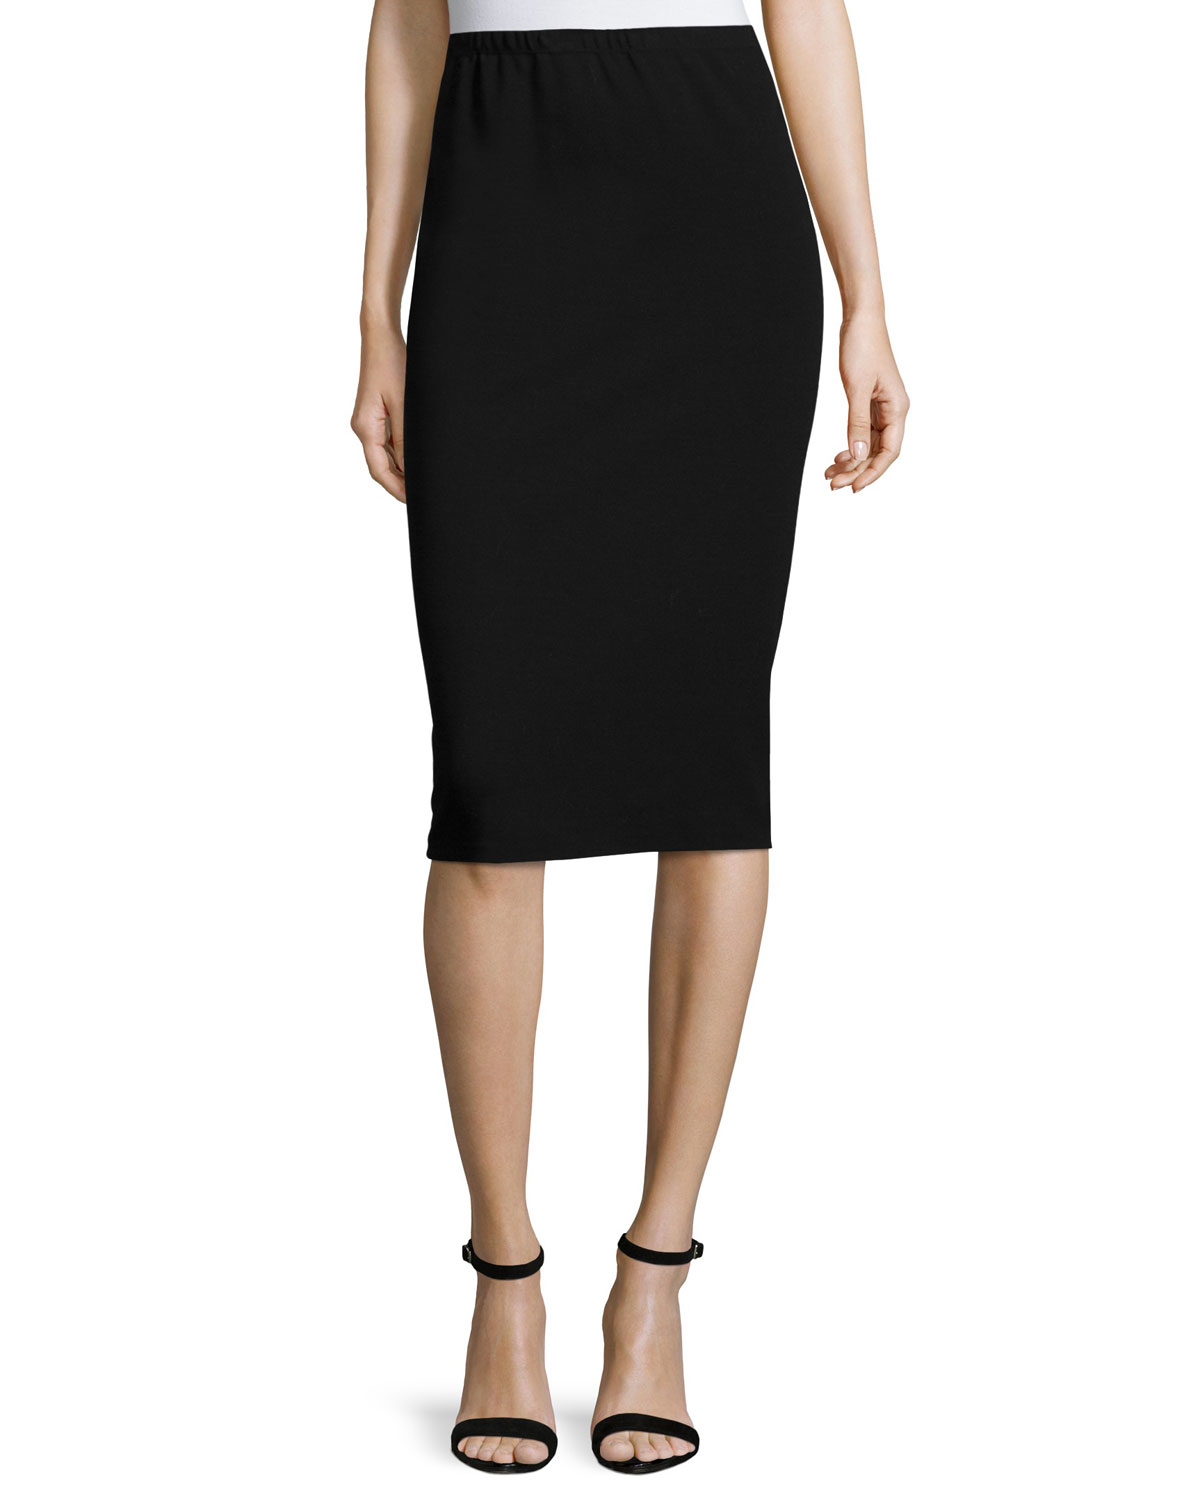 A pencil skirt that is midi length doesn't look right on a short woman either, and that leaves knee-length as the most flattering length. For a pencil skirt to really look right, the skirt should be fitted at the waist and hips but not be too tight.